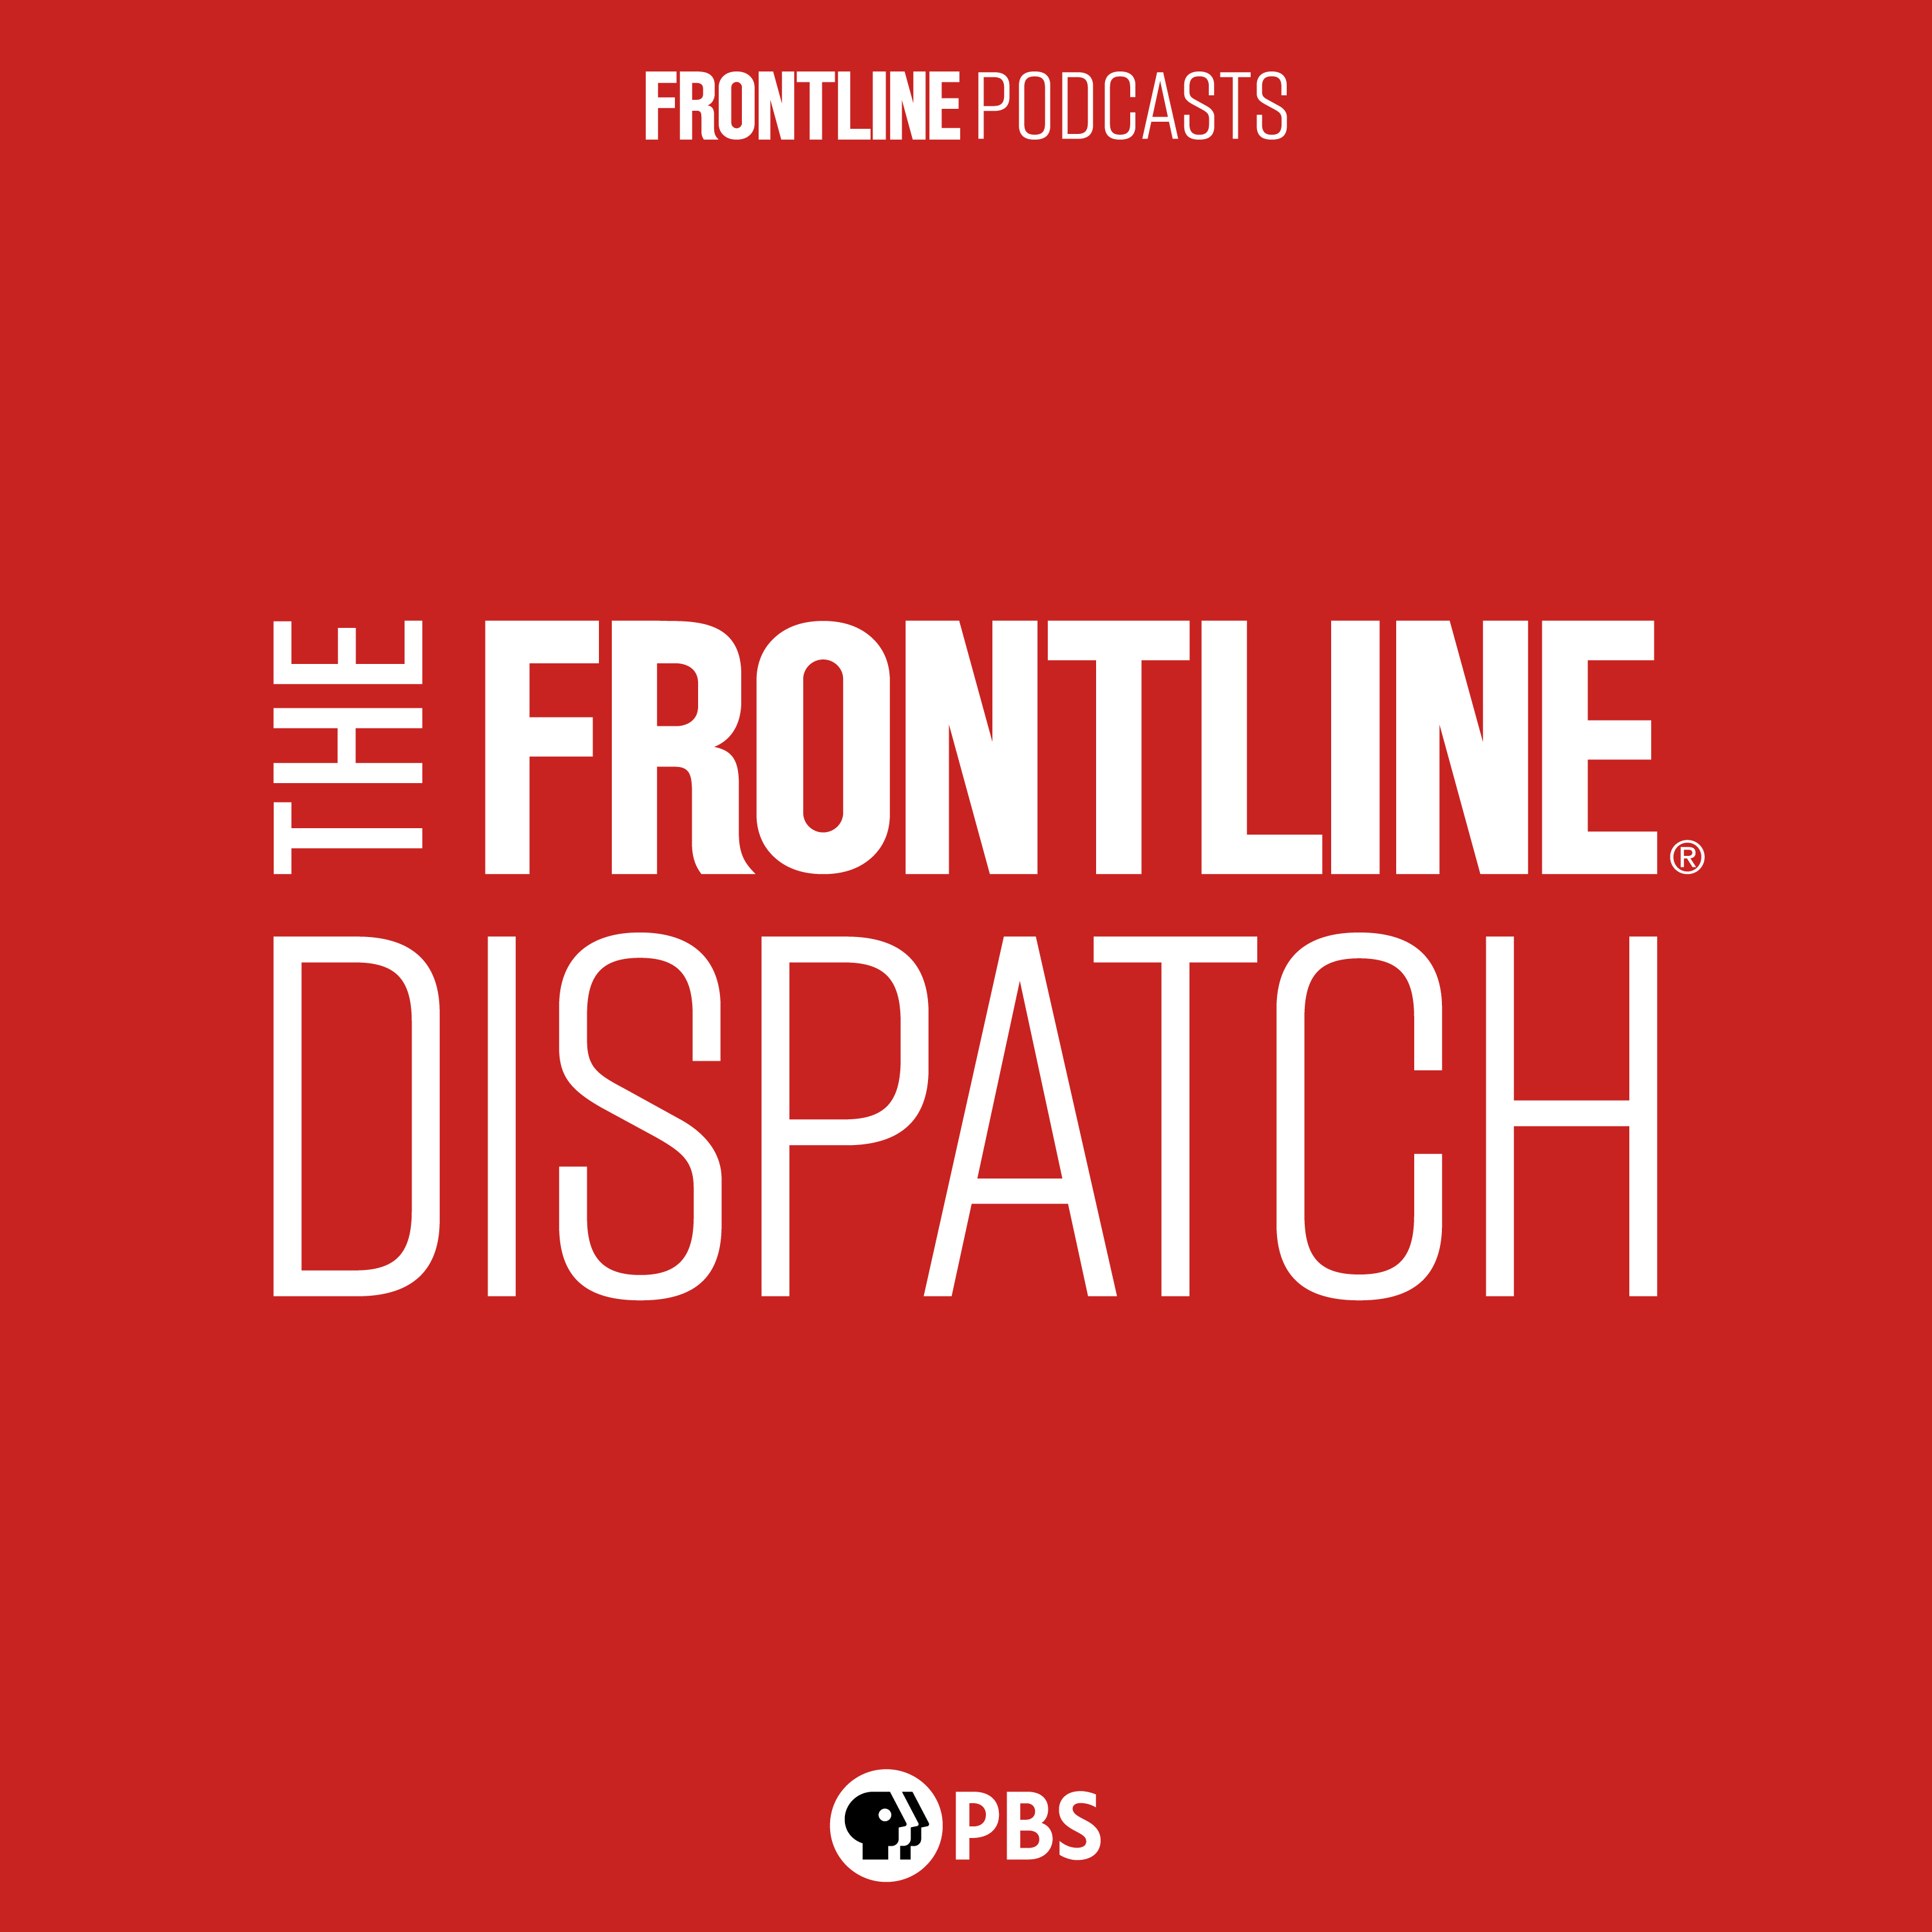 The FRONTLINE Dispatch